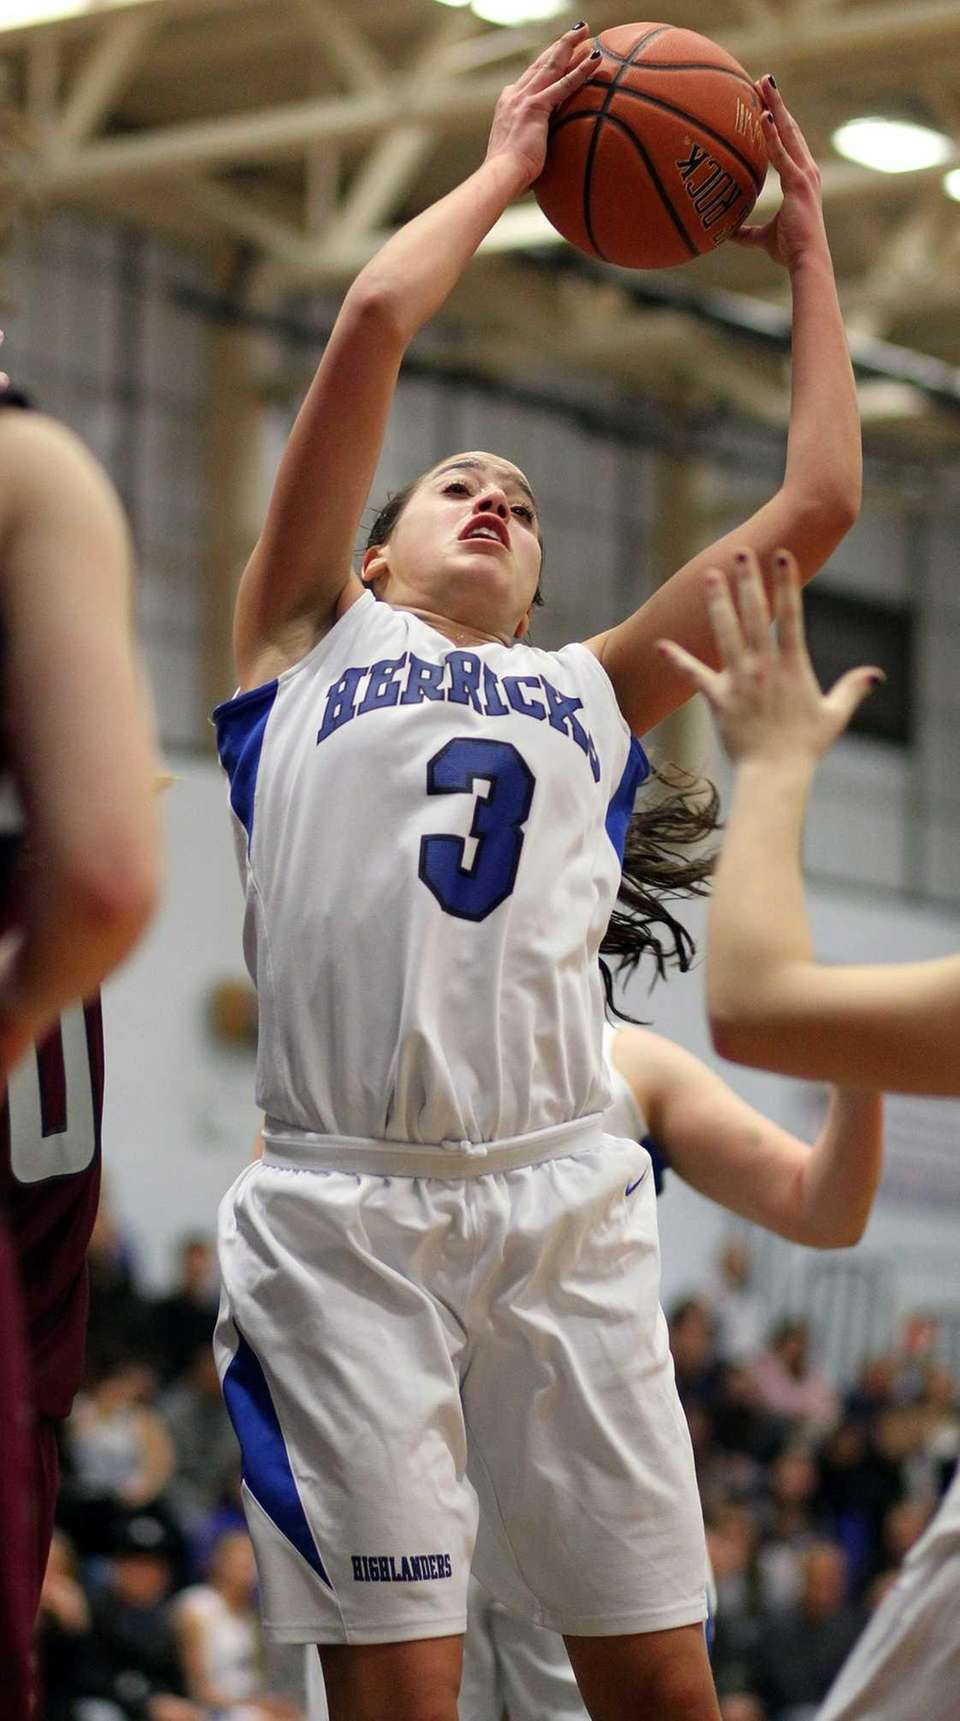 Herricks' Alison Ricchiuti grabs a rebound during a